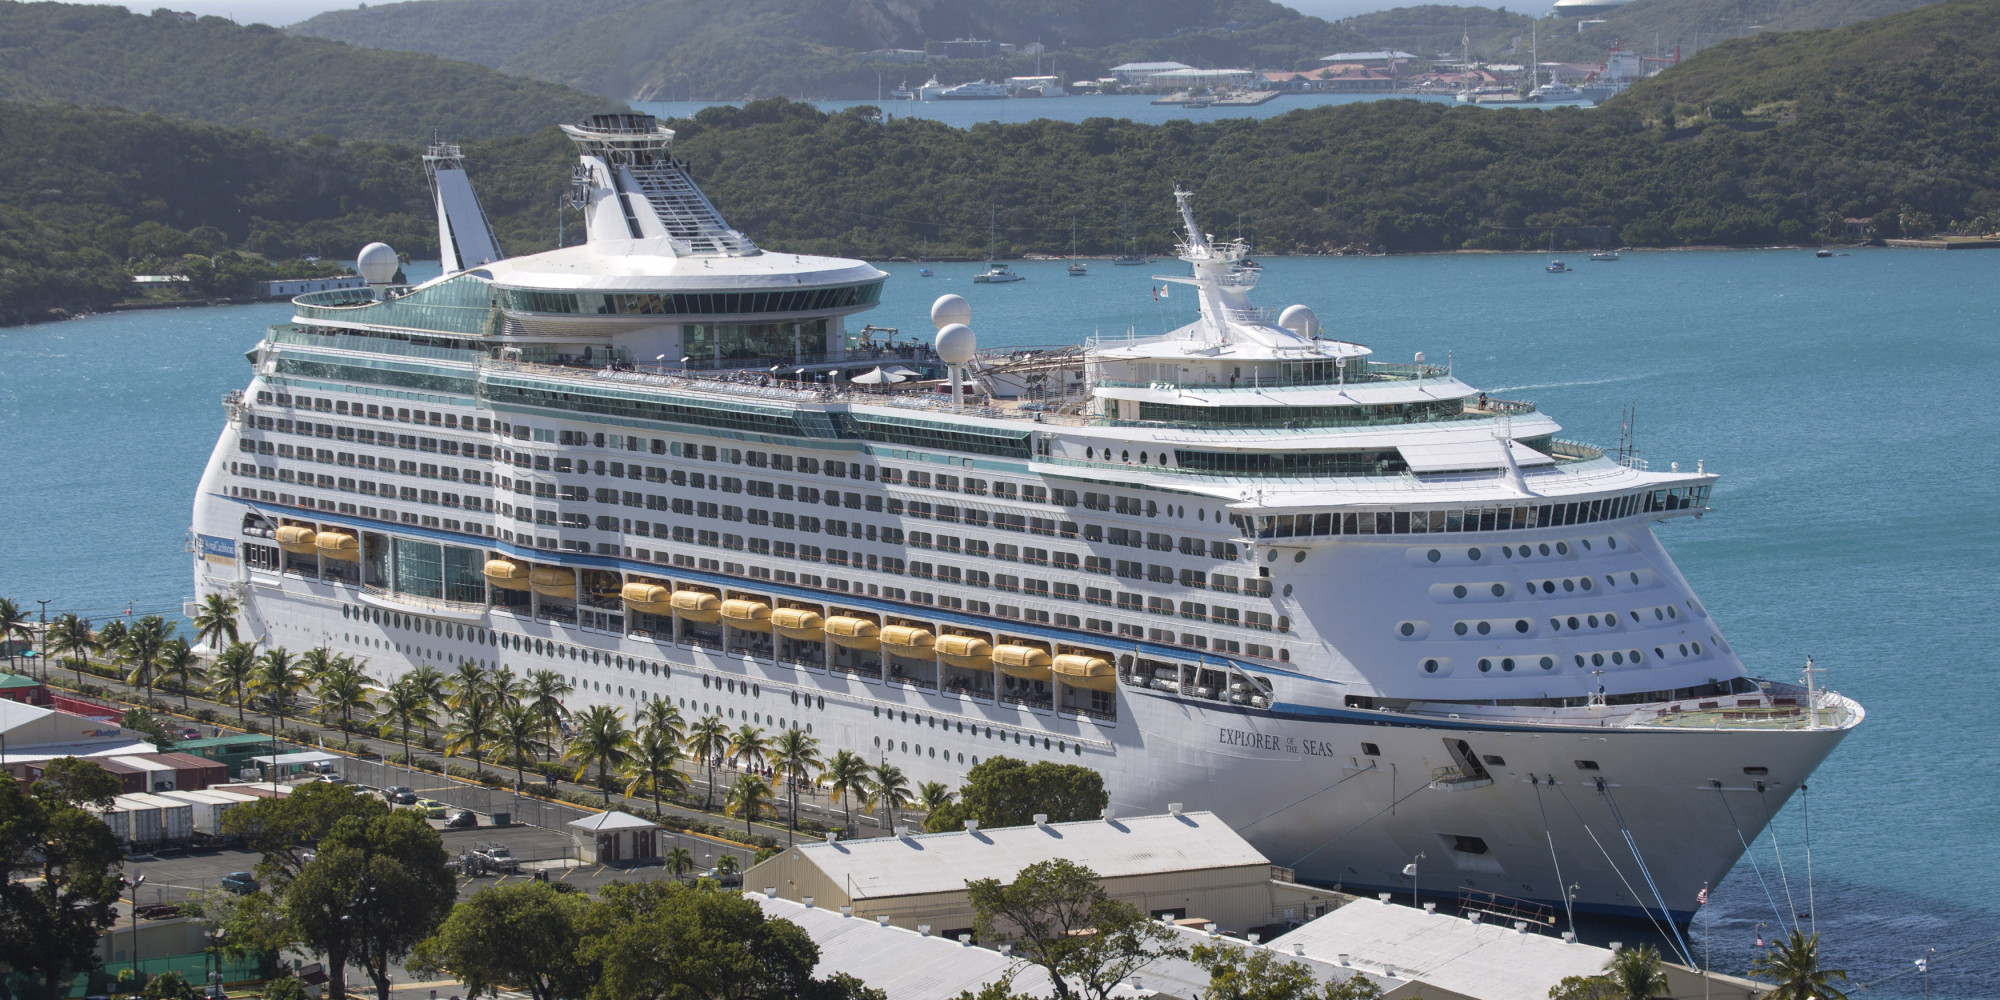 Royal Caribbean Cruise Ends After Possible Norovirus Outbreak, Leaves 626 Sick (VIDEO)